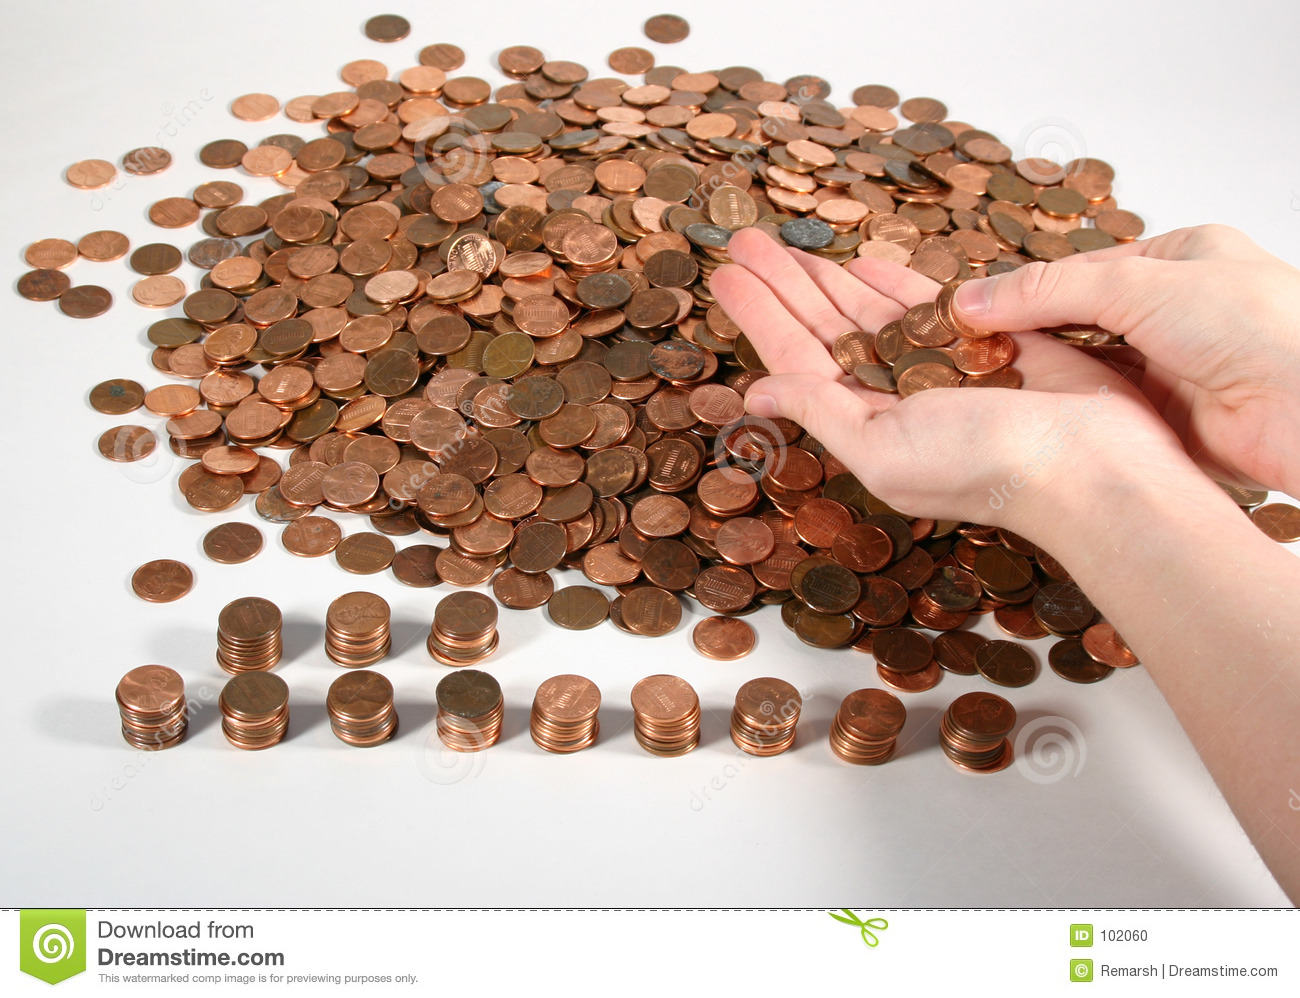 worksheet Counting Pennies counting pennies stock photo image 102060 pennies